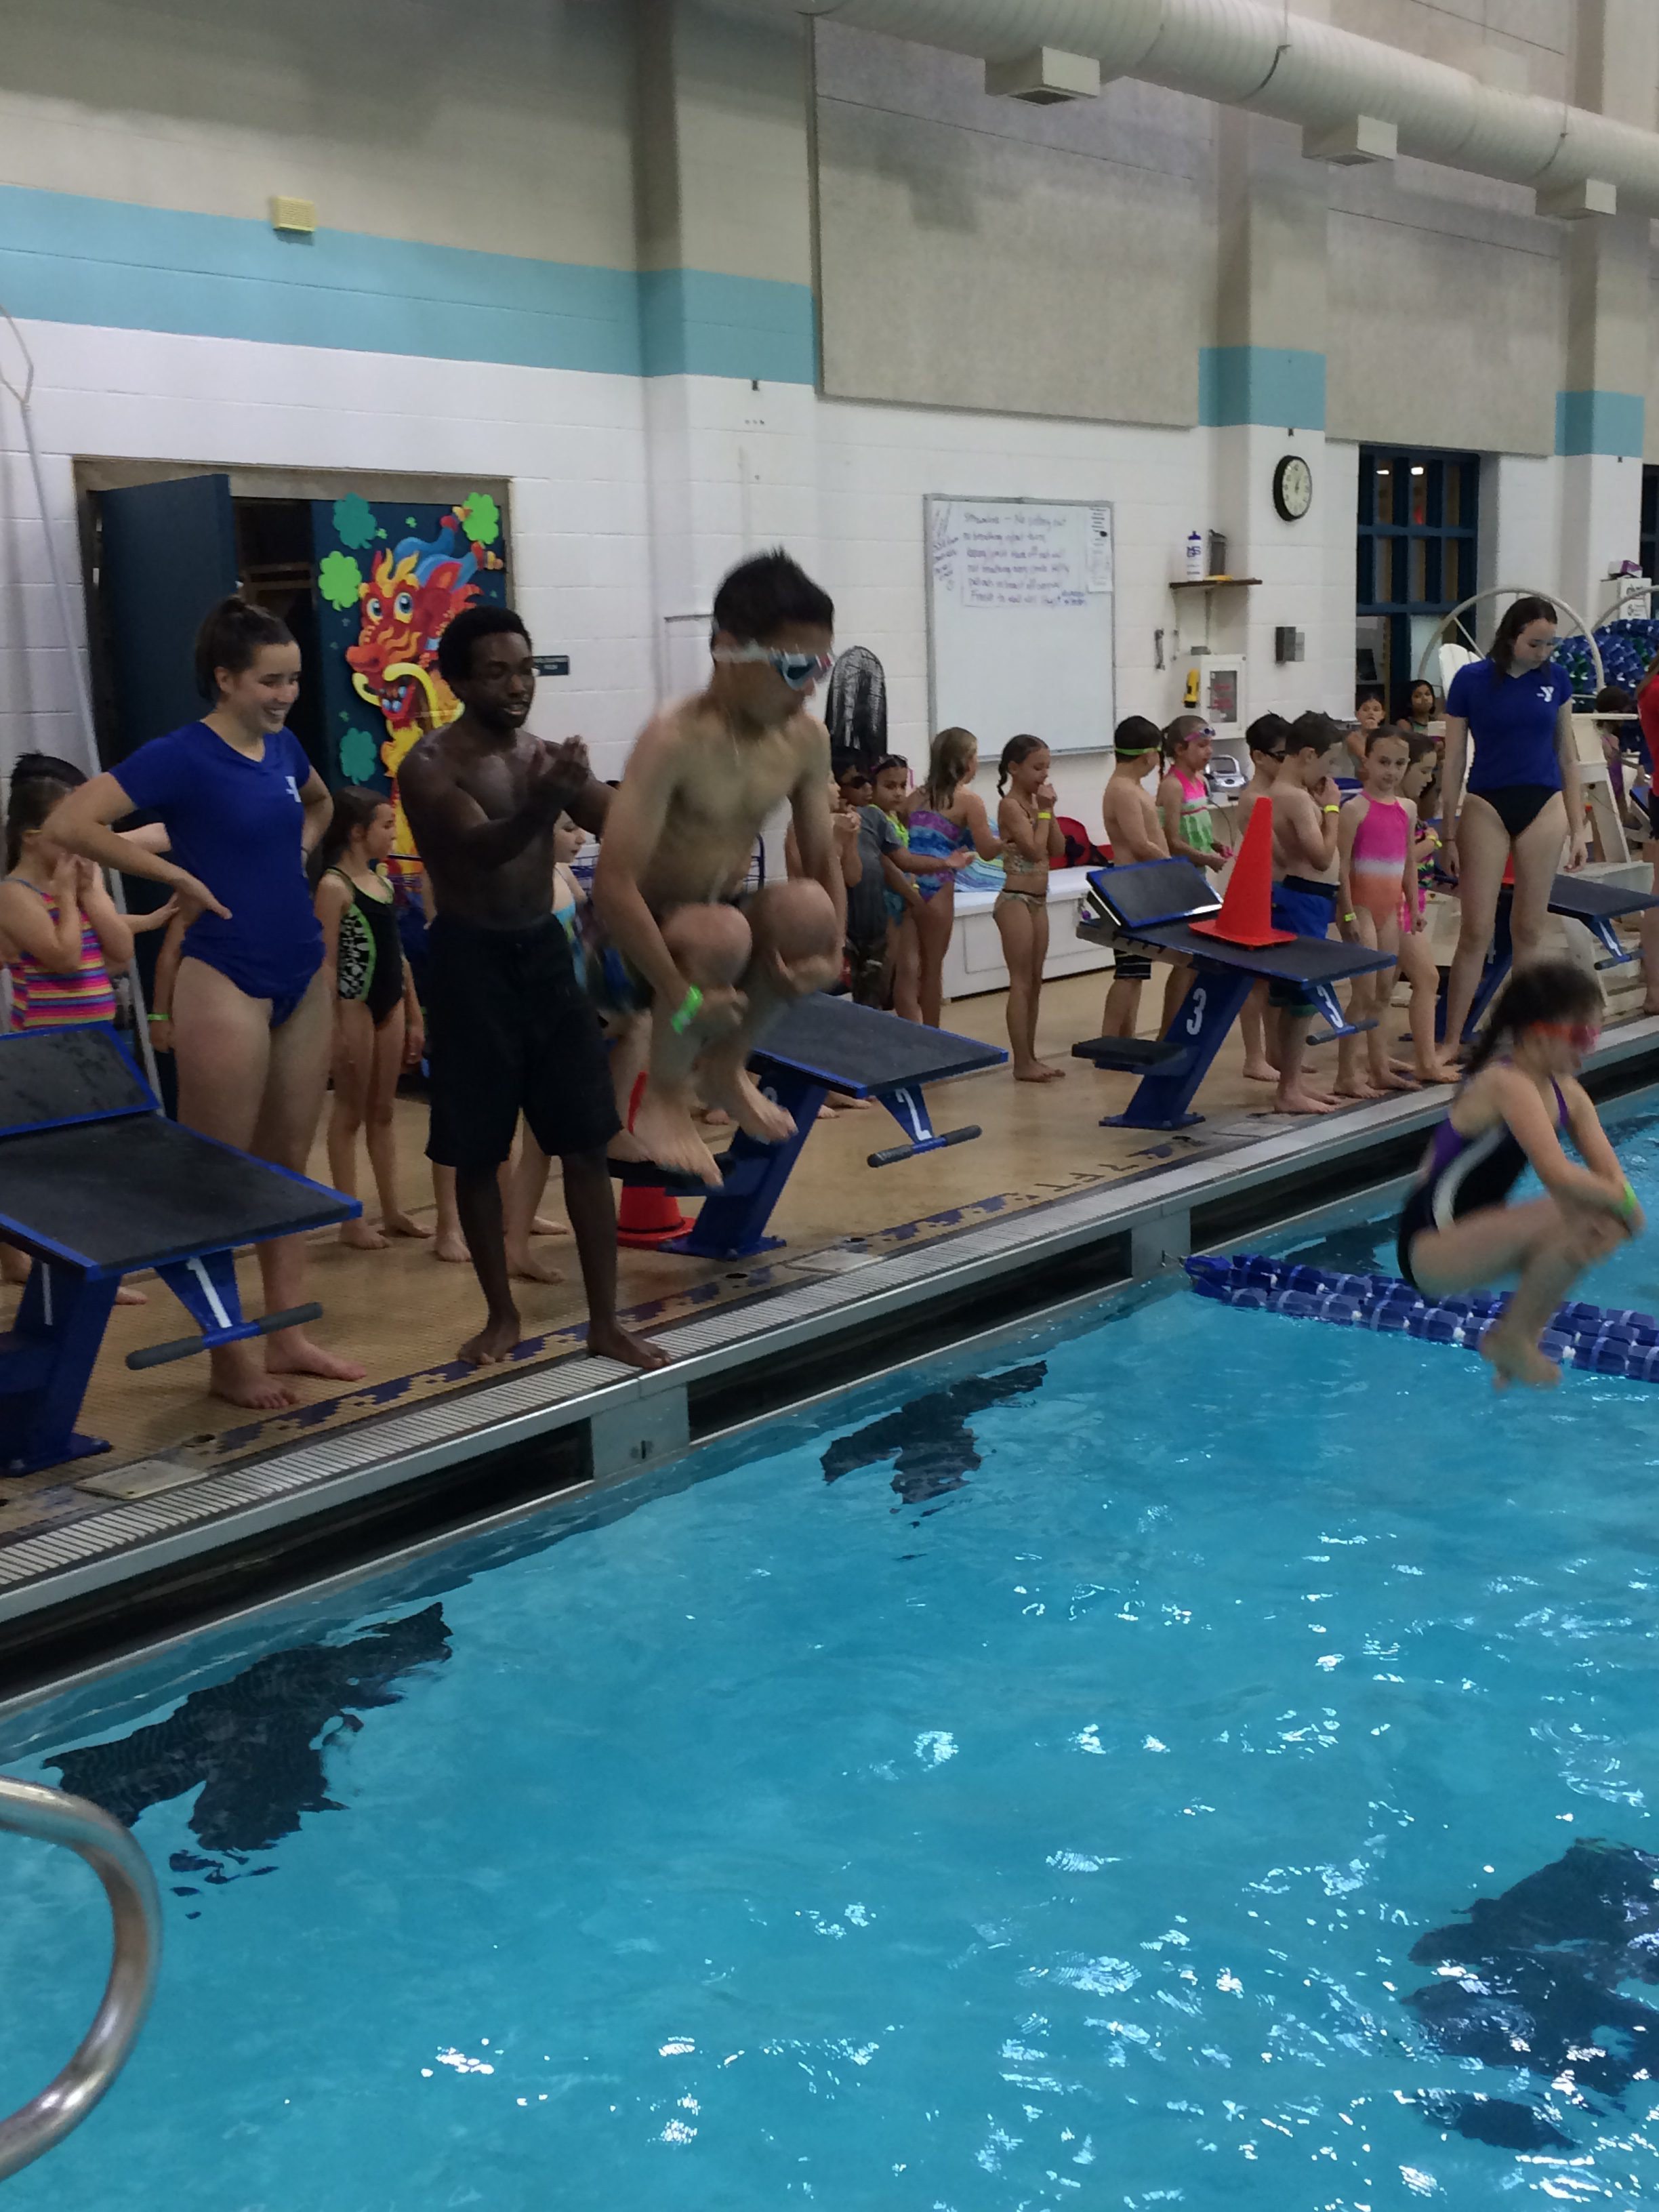 Students jumping into the pool